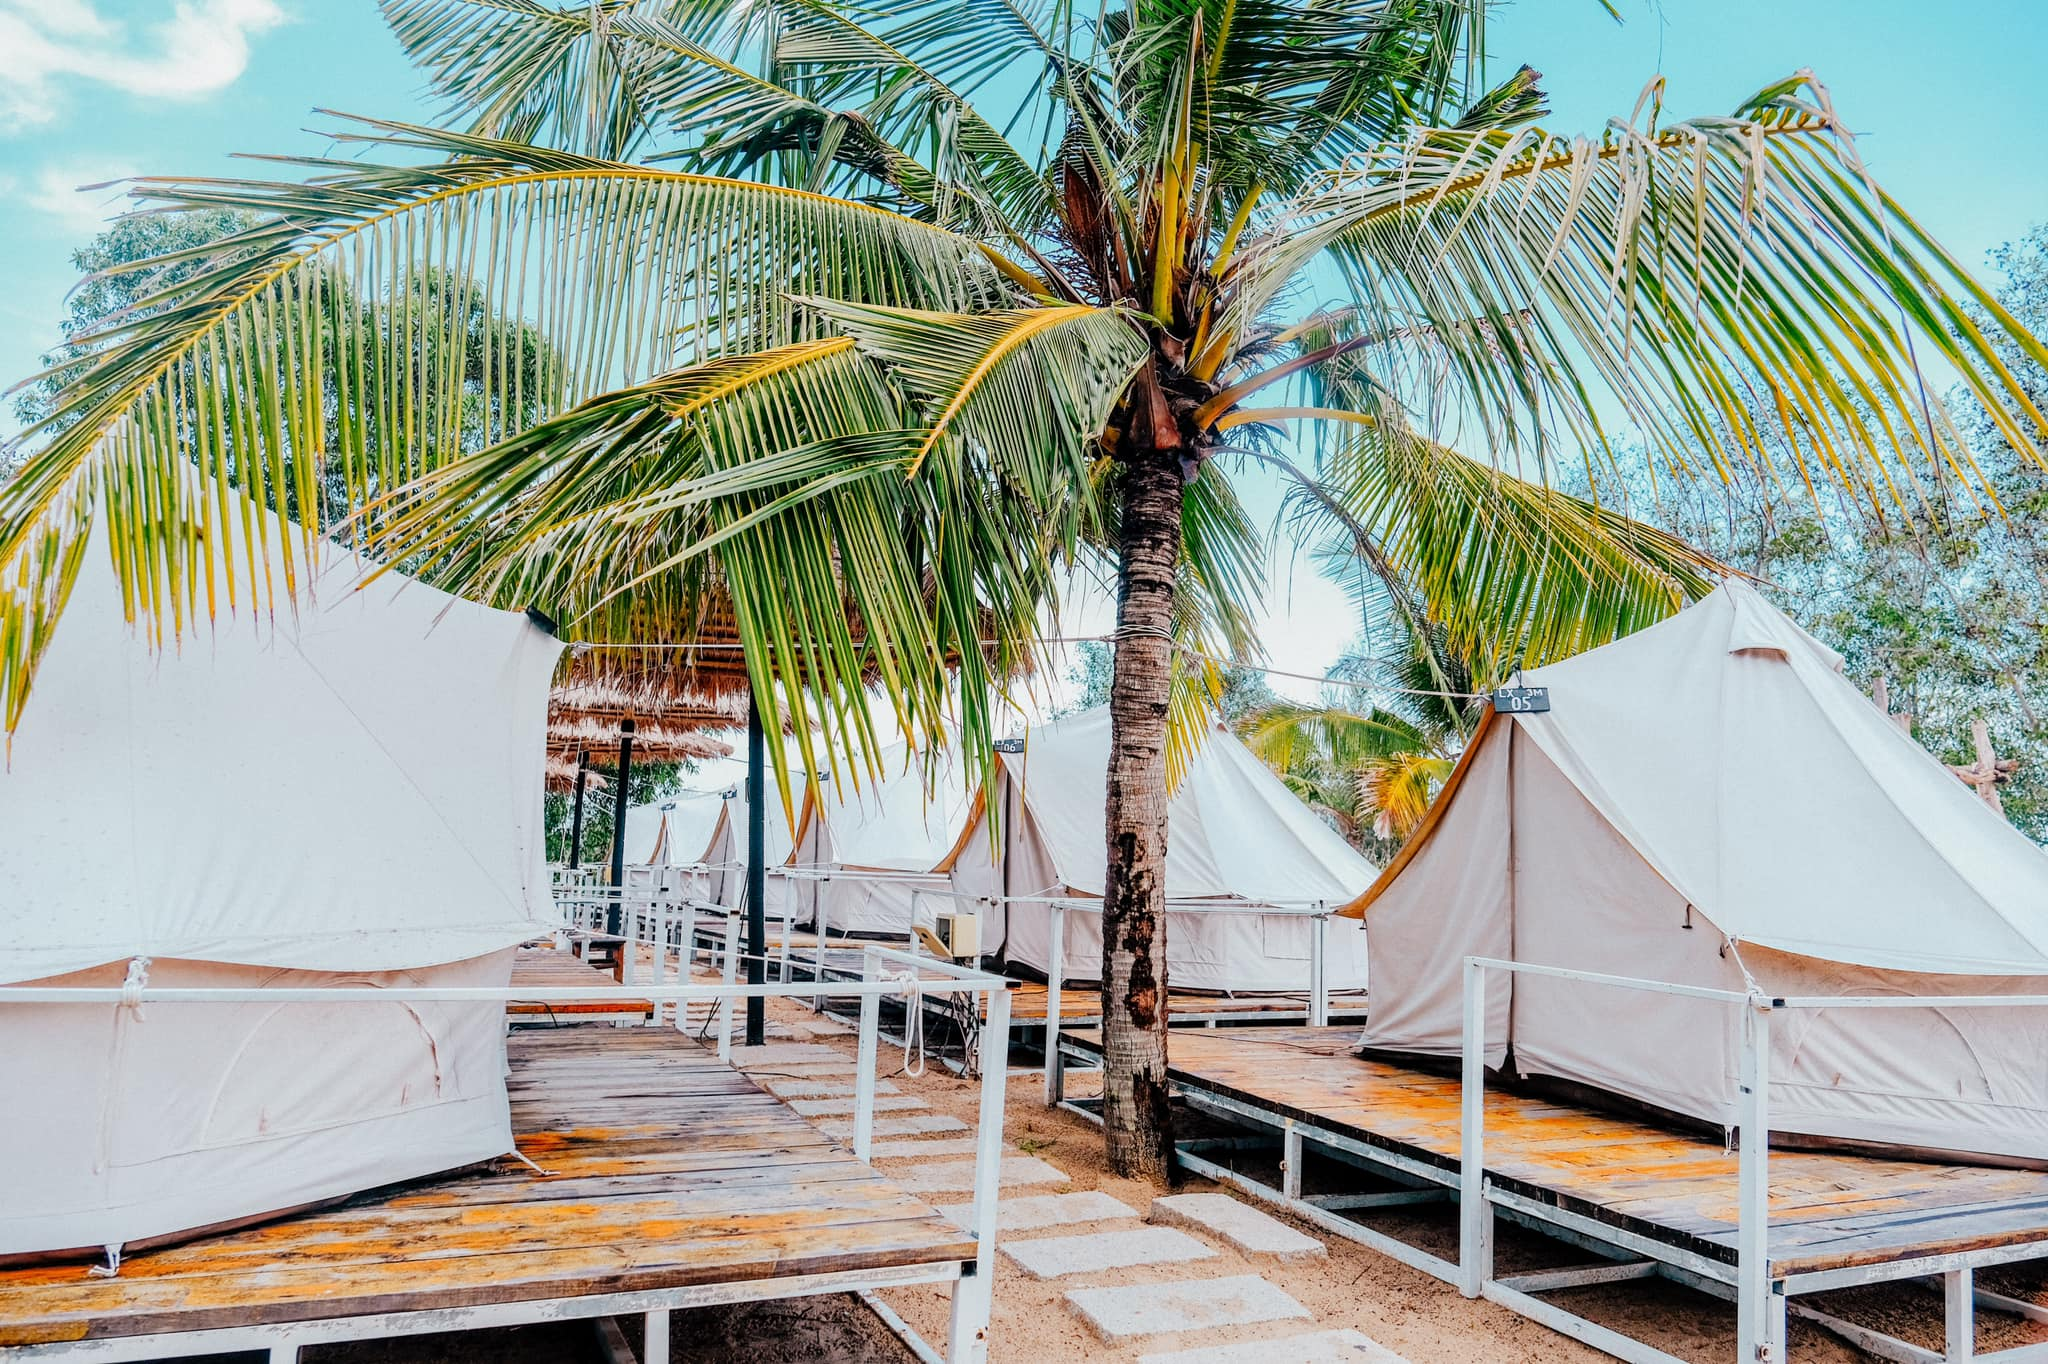 White tents are surrounded by coconut trees at Coco Beachcamp Lagi in Binh Thuan Province. Photo courtesy of Coco Beachcamp Lagi.